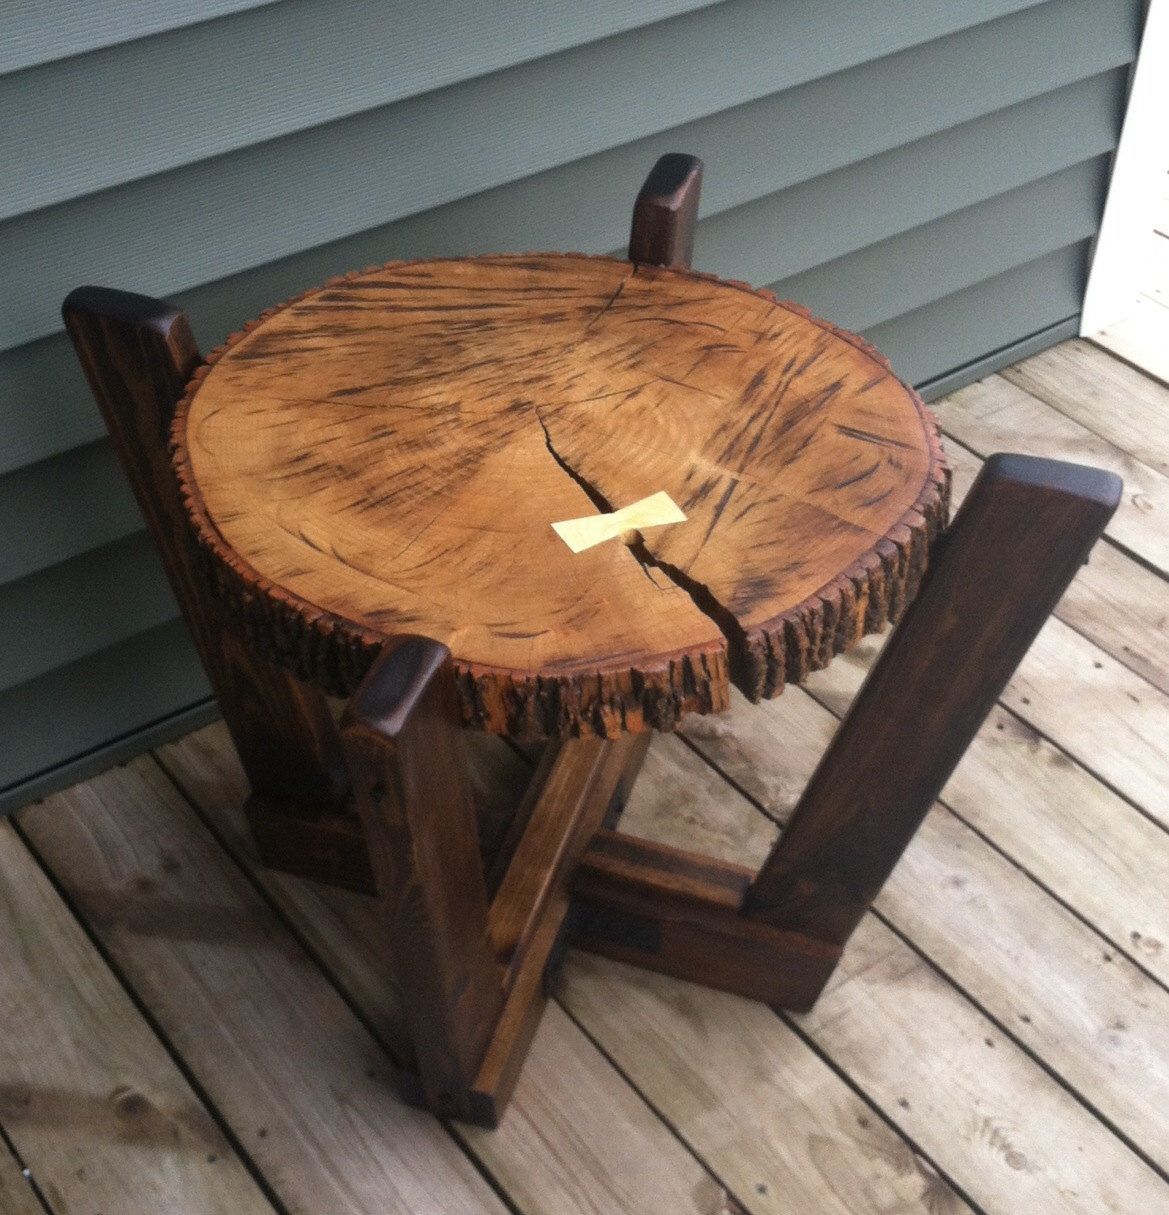 Log Slab Side Table Or Coffee Table With A Dutchman Wood Joint / Rustic  Sideu2026